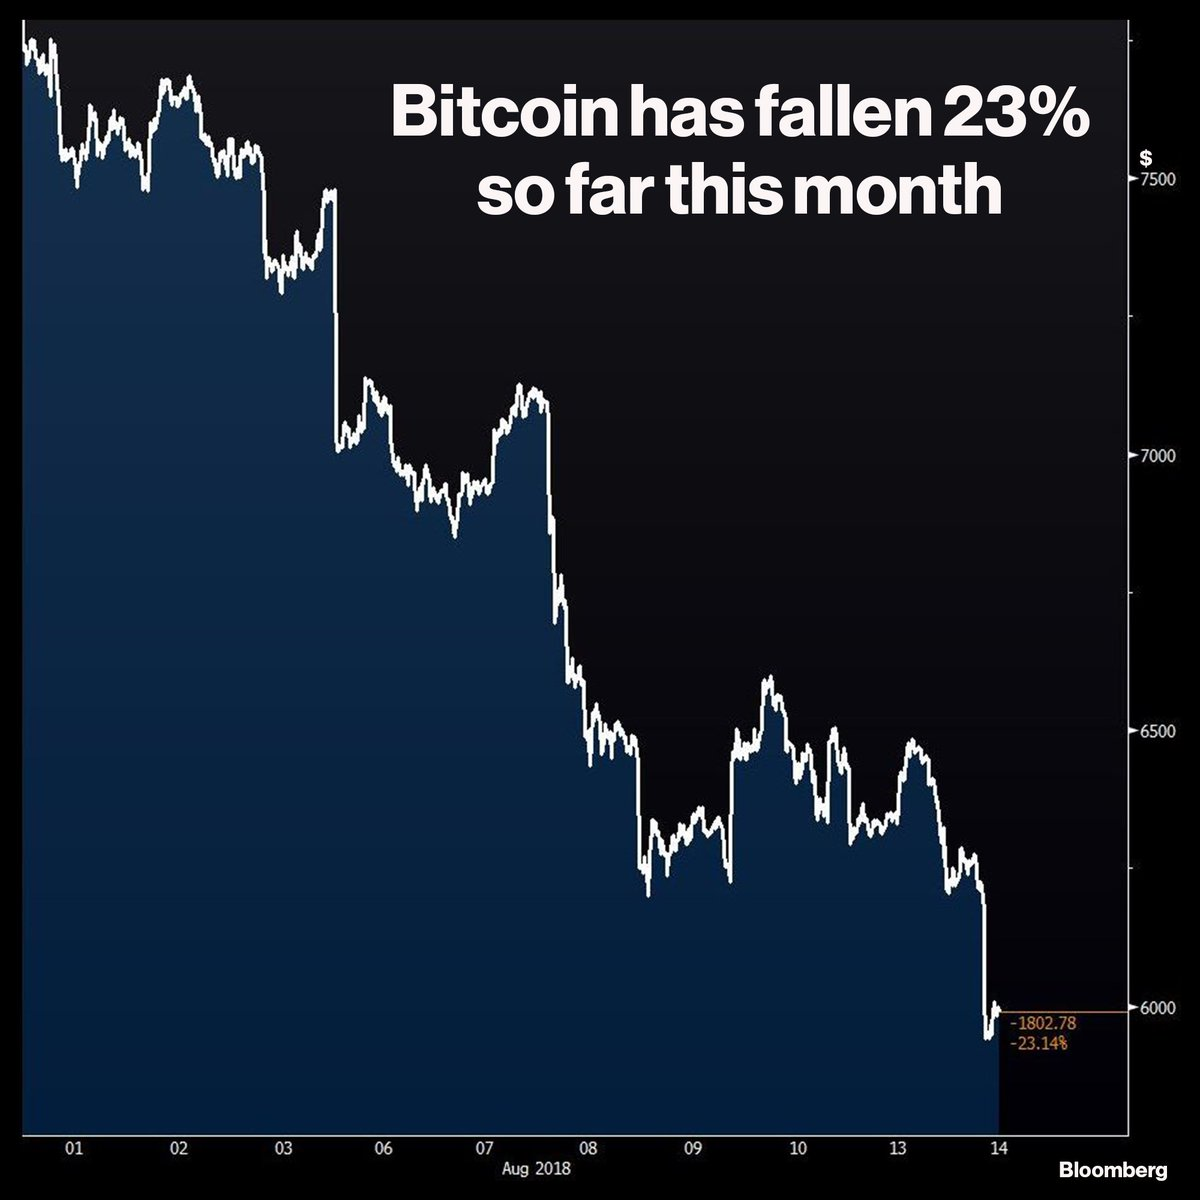 Bitcoin drops below $6,000 and dozens of other cryptocurrencies are also falling https://t.co/Gmi9sLAcHE